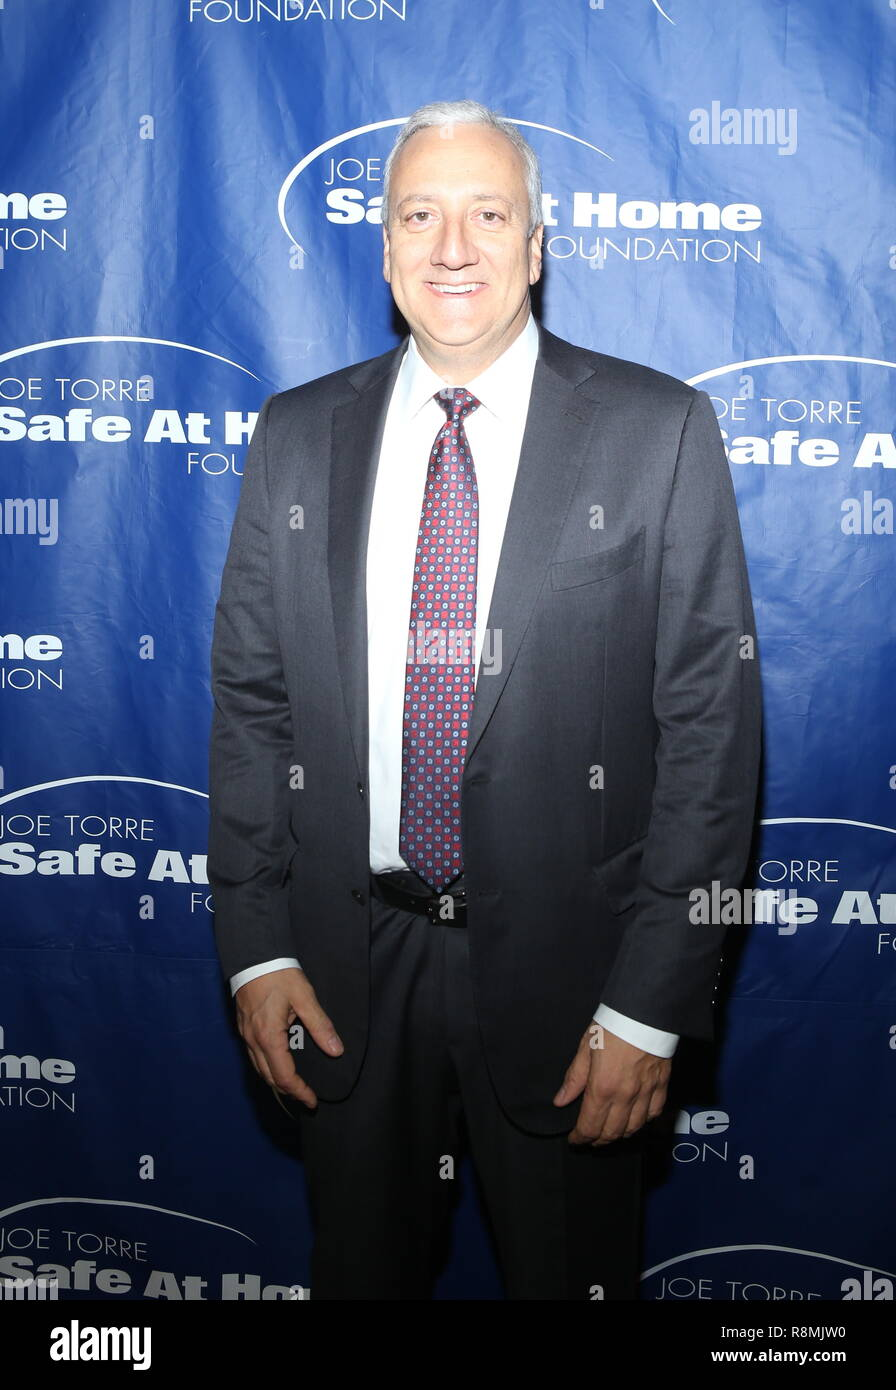 16th Annual Joe Torre Safe At Home Foundation Gala at Cipriani Financial District  Featuring: Michael Massimino Where: New York, New York, United States When: 15 Nov 2018 Credit: Derrick Salters/WENN.com - Stock Image